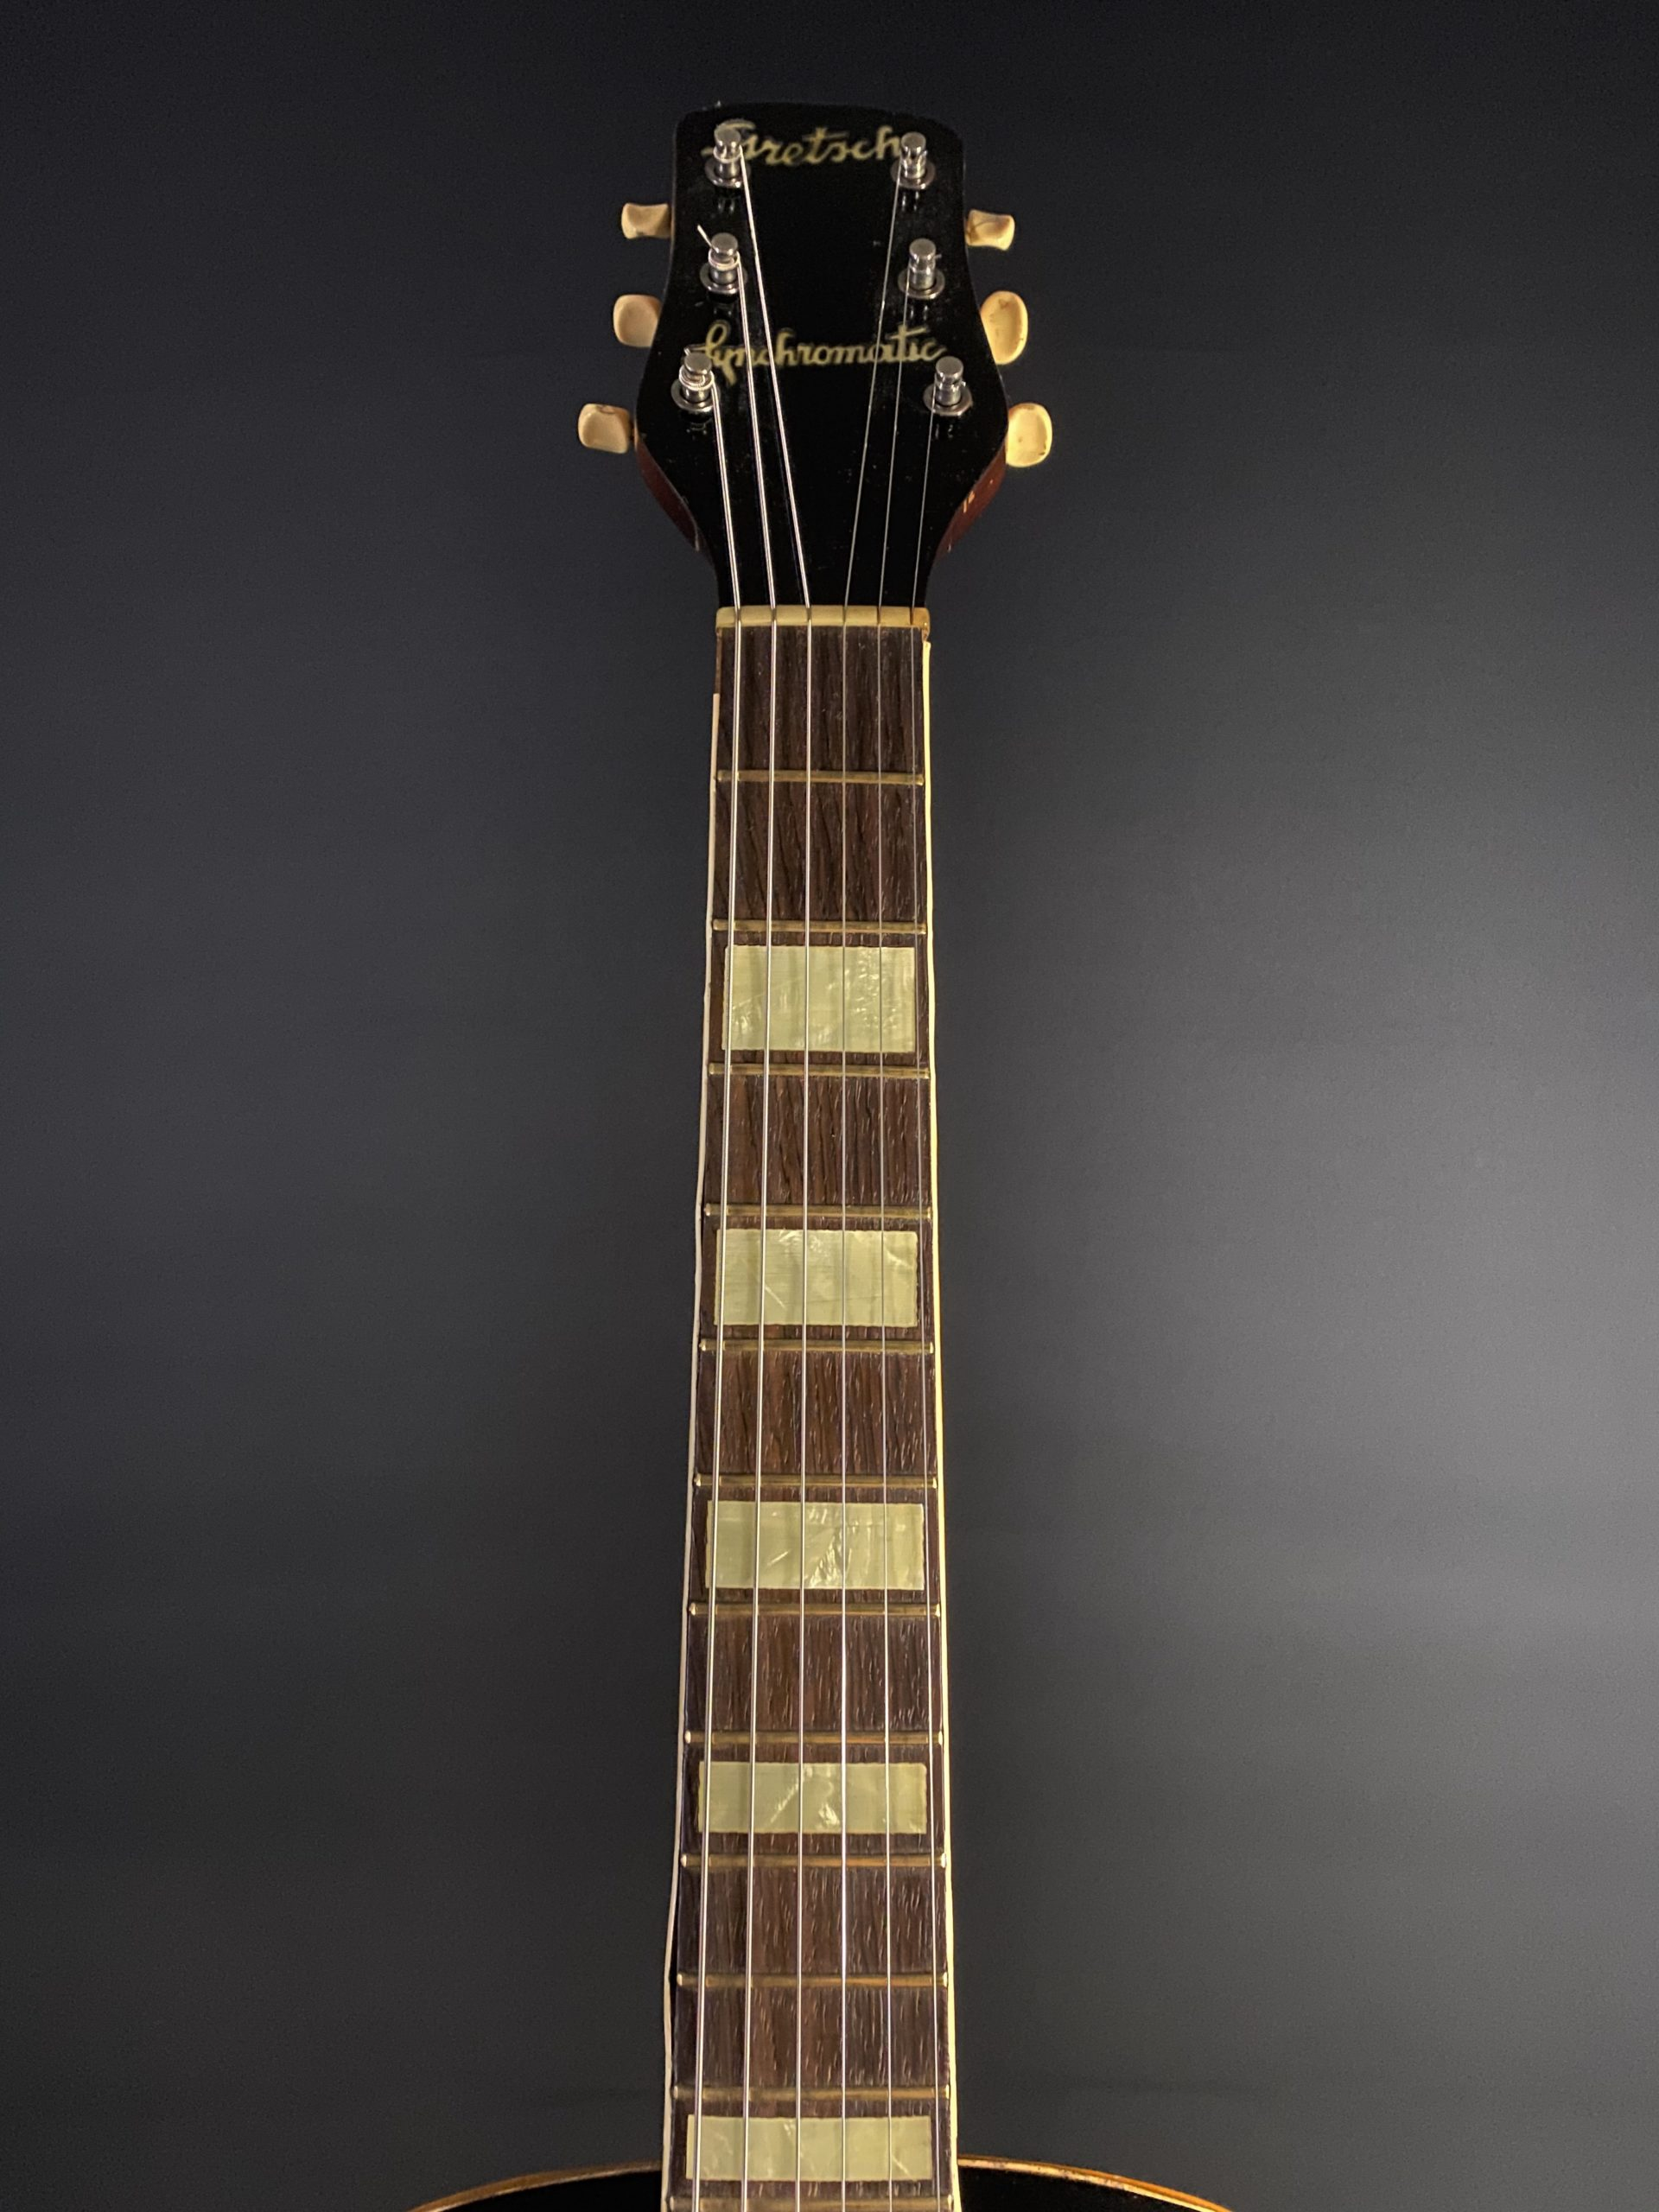 1952 Gretsch Synchromatic Archtop Vintage Guitar 03